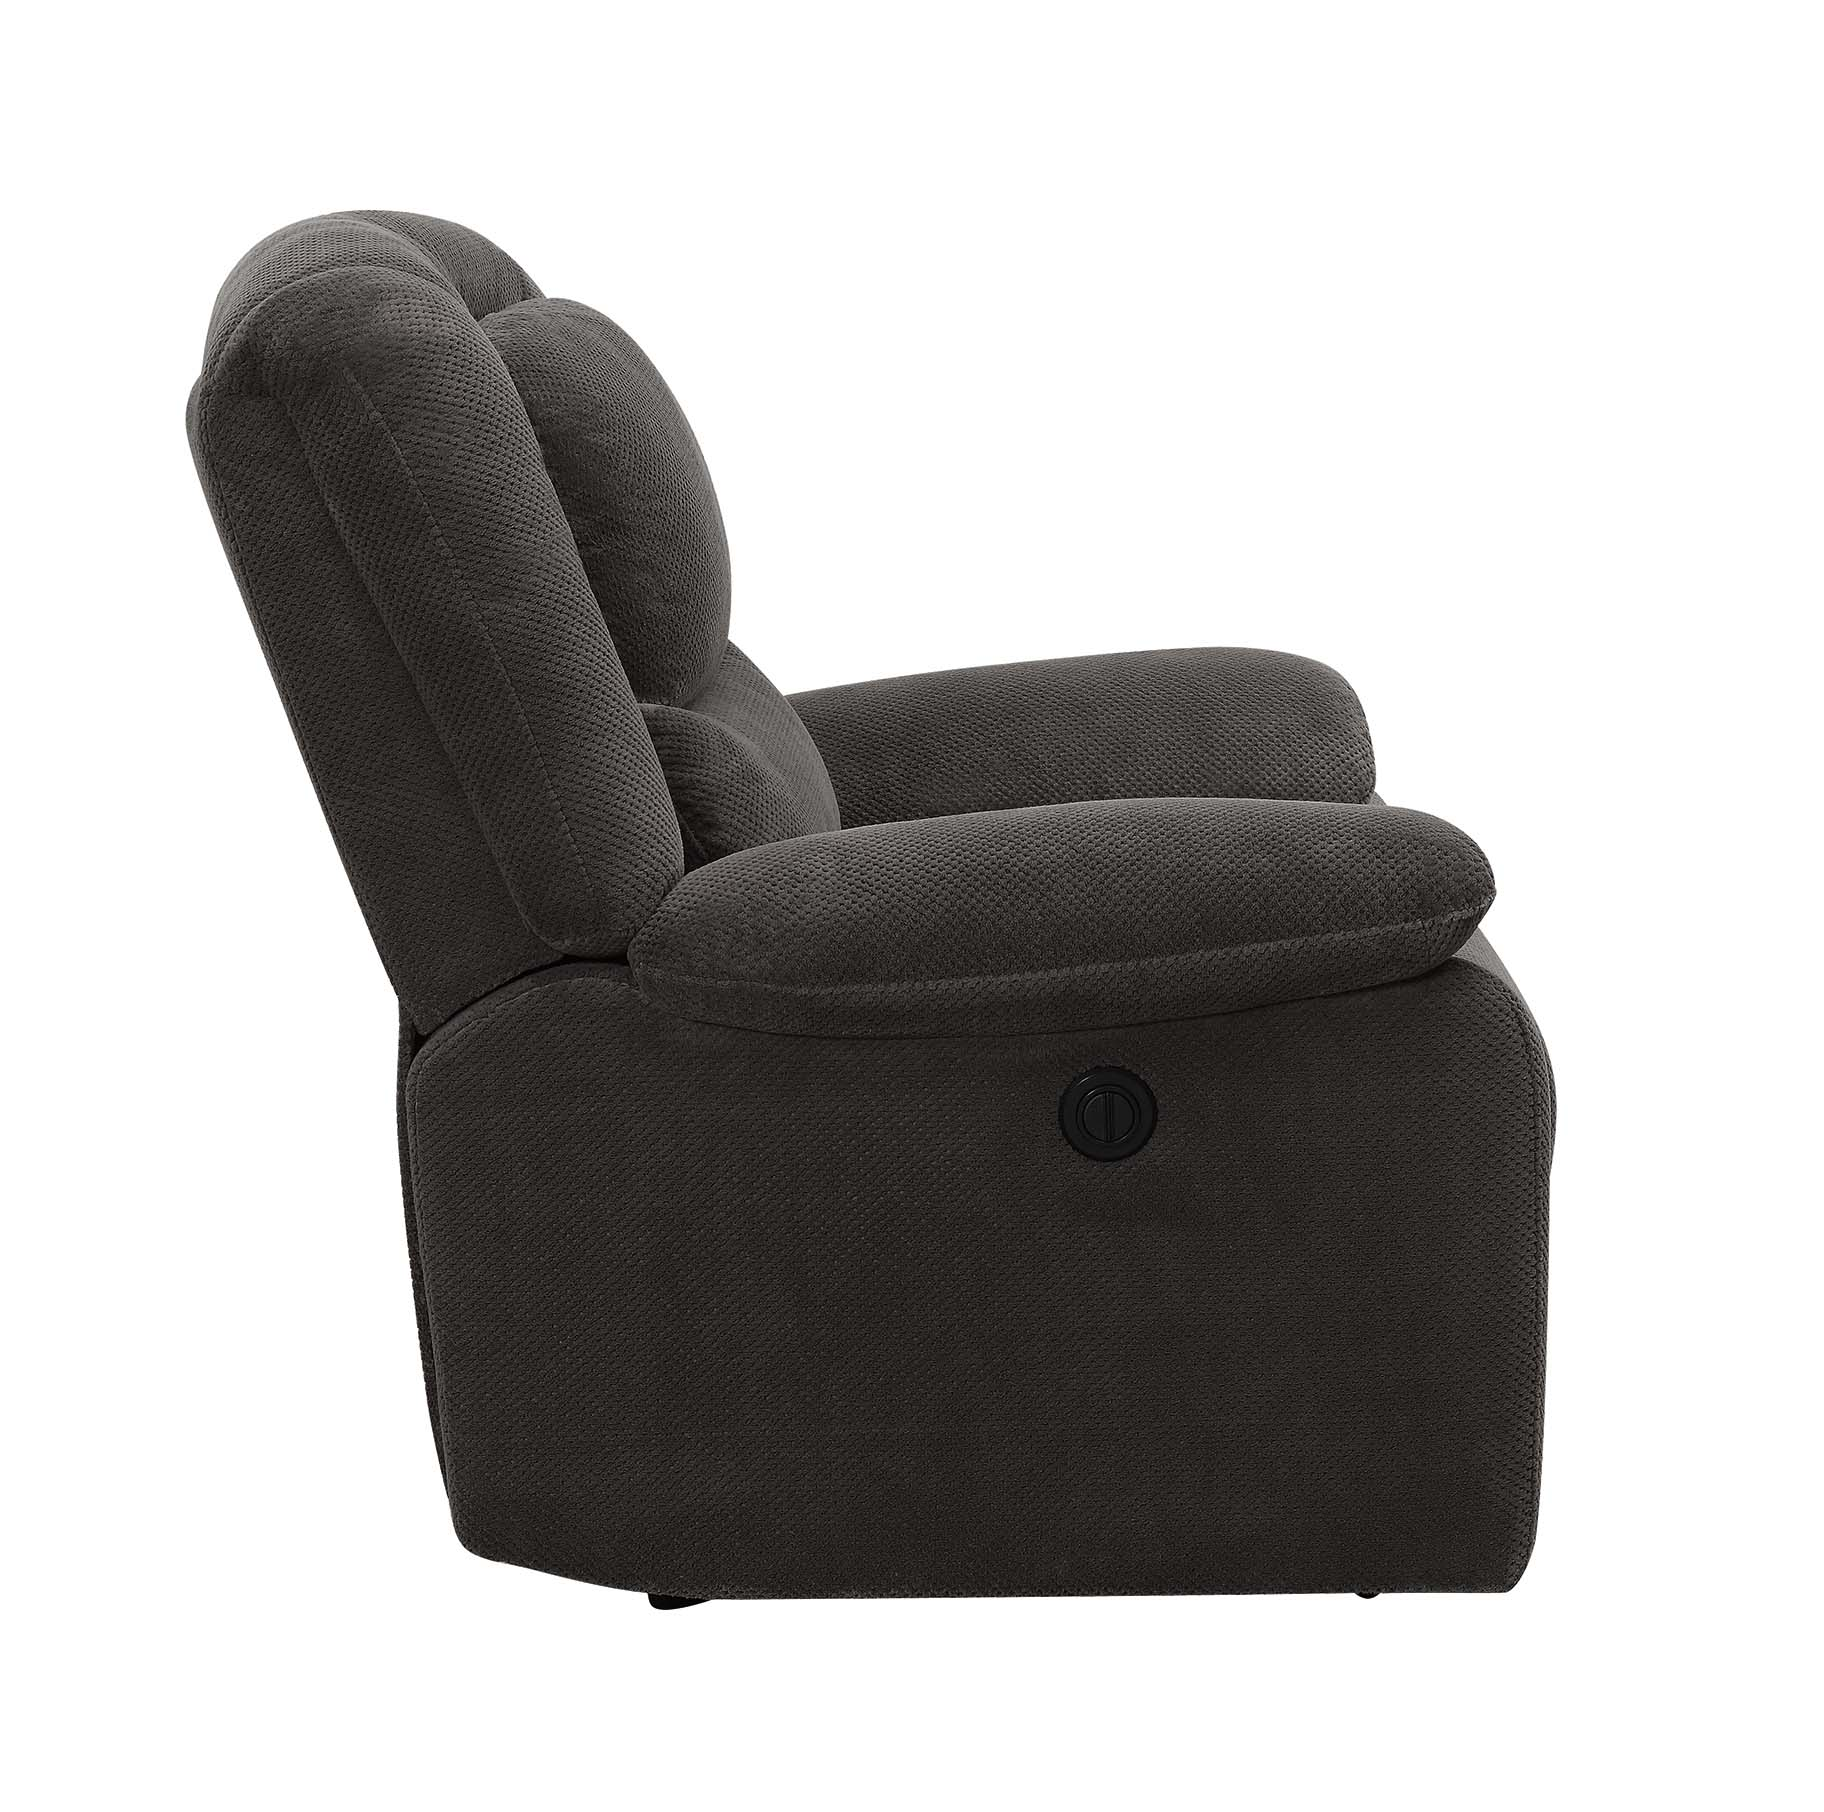 serta jennings chair warranty keekaroo high review product features